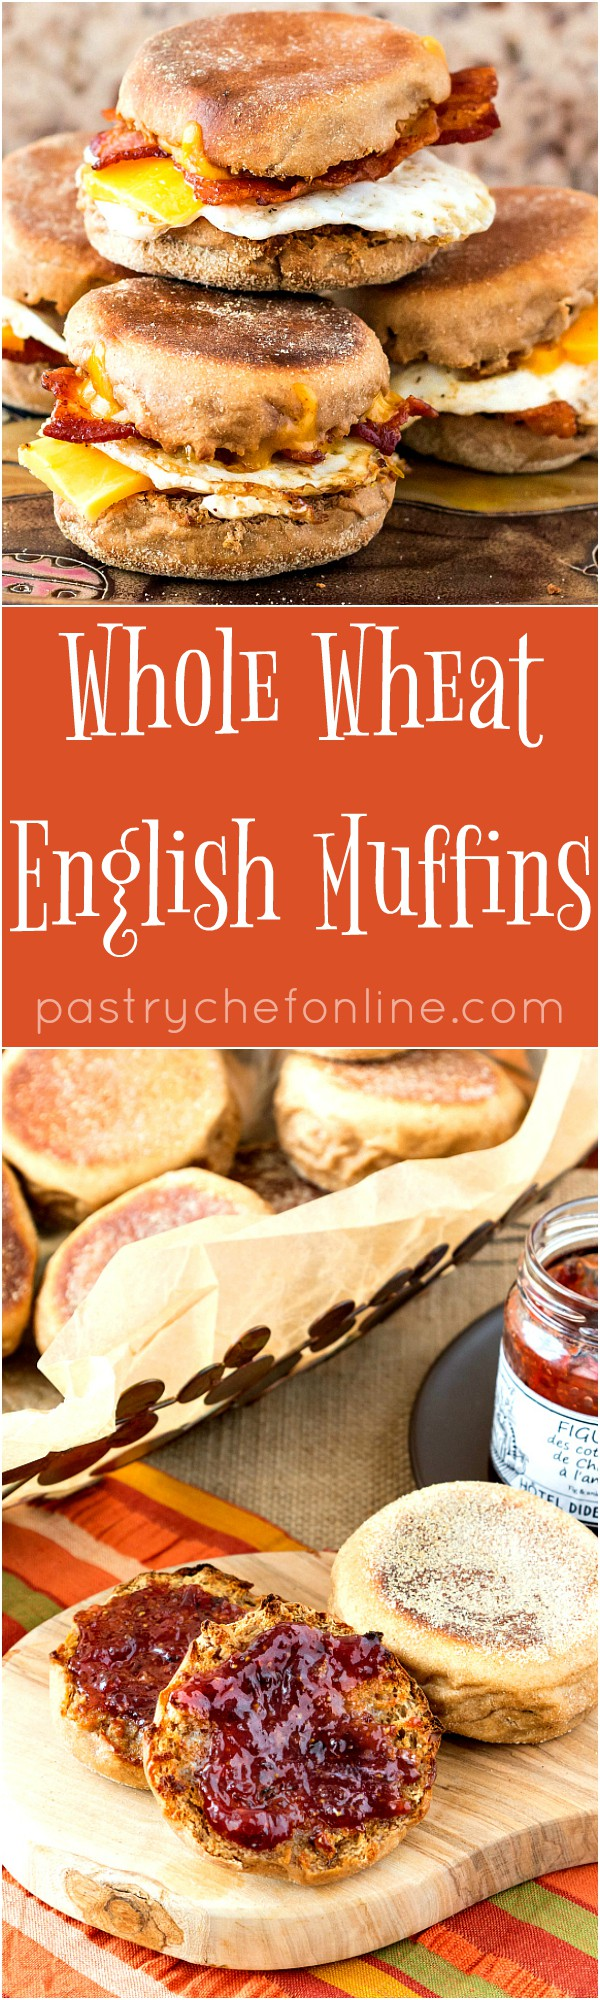 This Whole Wheat English Muffins recipe is full of flavor and has tons of nooks and crannies perfect for holding onto butter and jam. You will love these English muffins for breakfast or brunch or even for making sandwiches whenever you need a little snack. And English muffin pizzas? Absolutely! Featuring Lindley Mills Super Sprout Flour | pastrychefonline.com